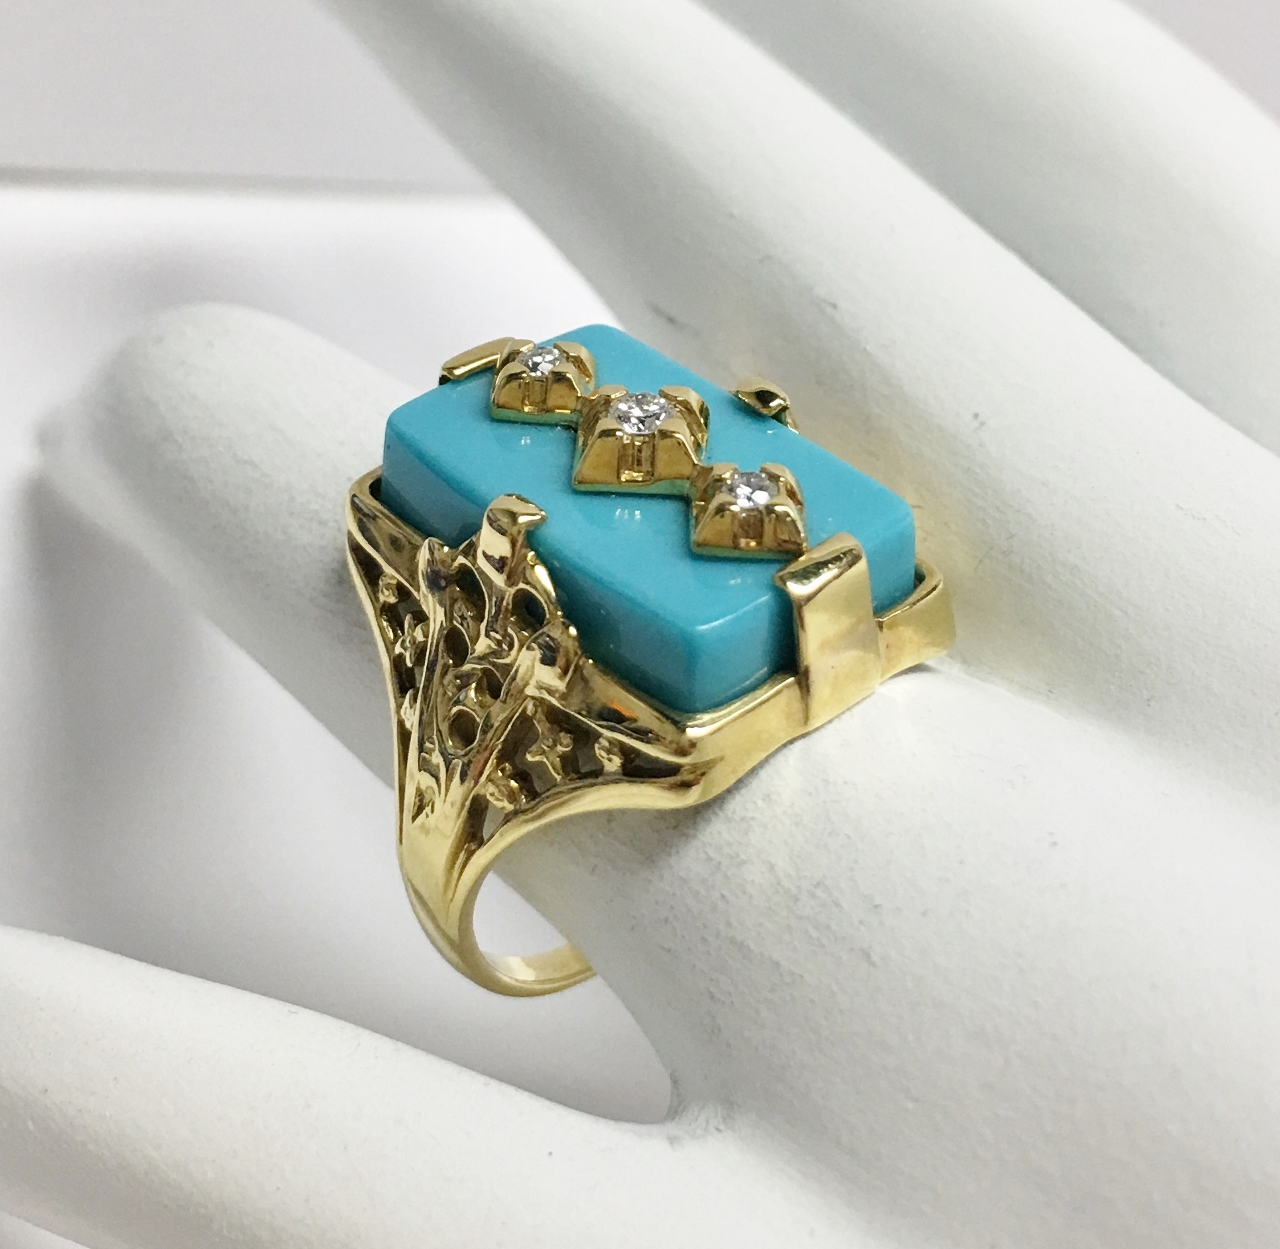 18K Yellow Gold Turquoise Diamond Ring